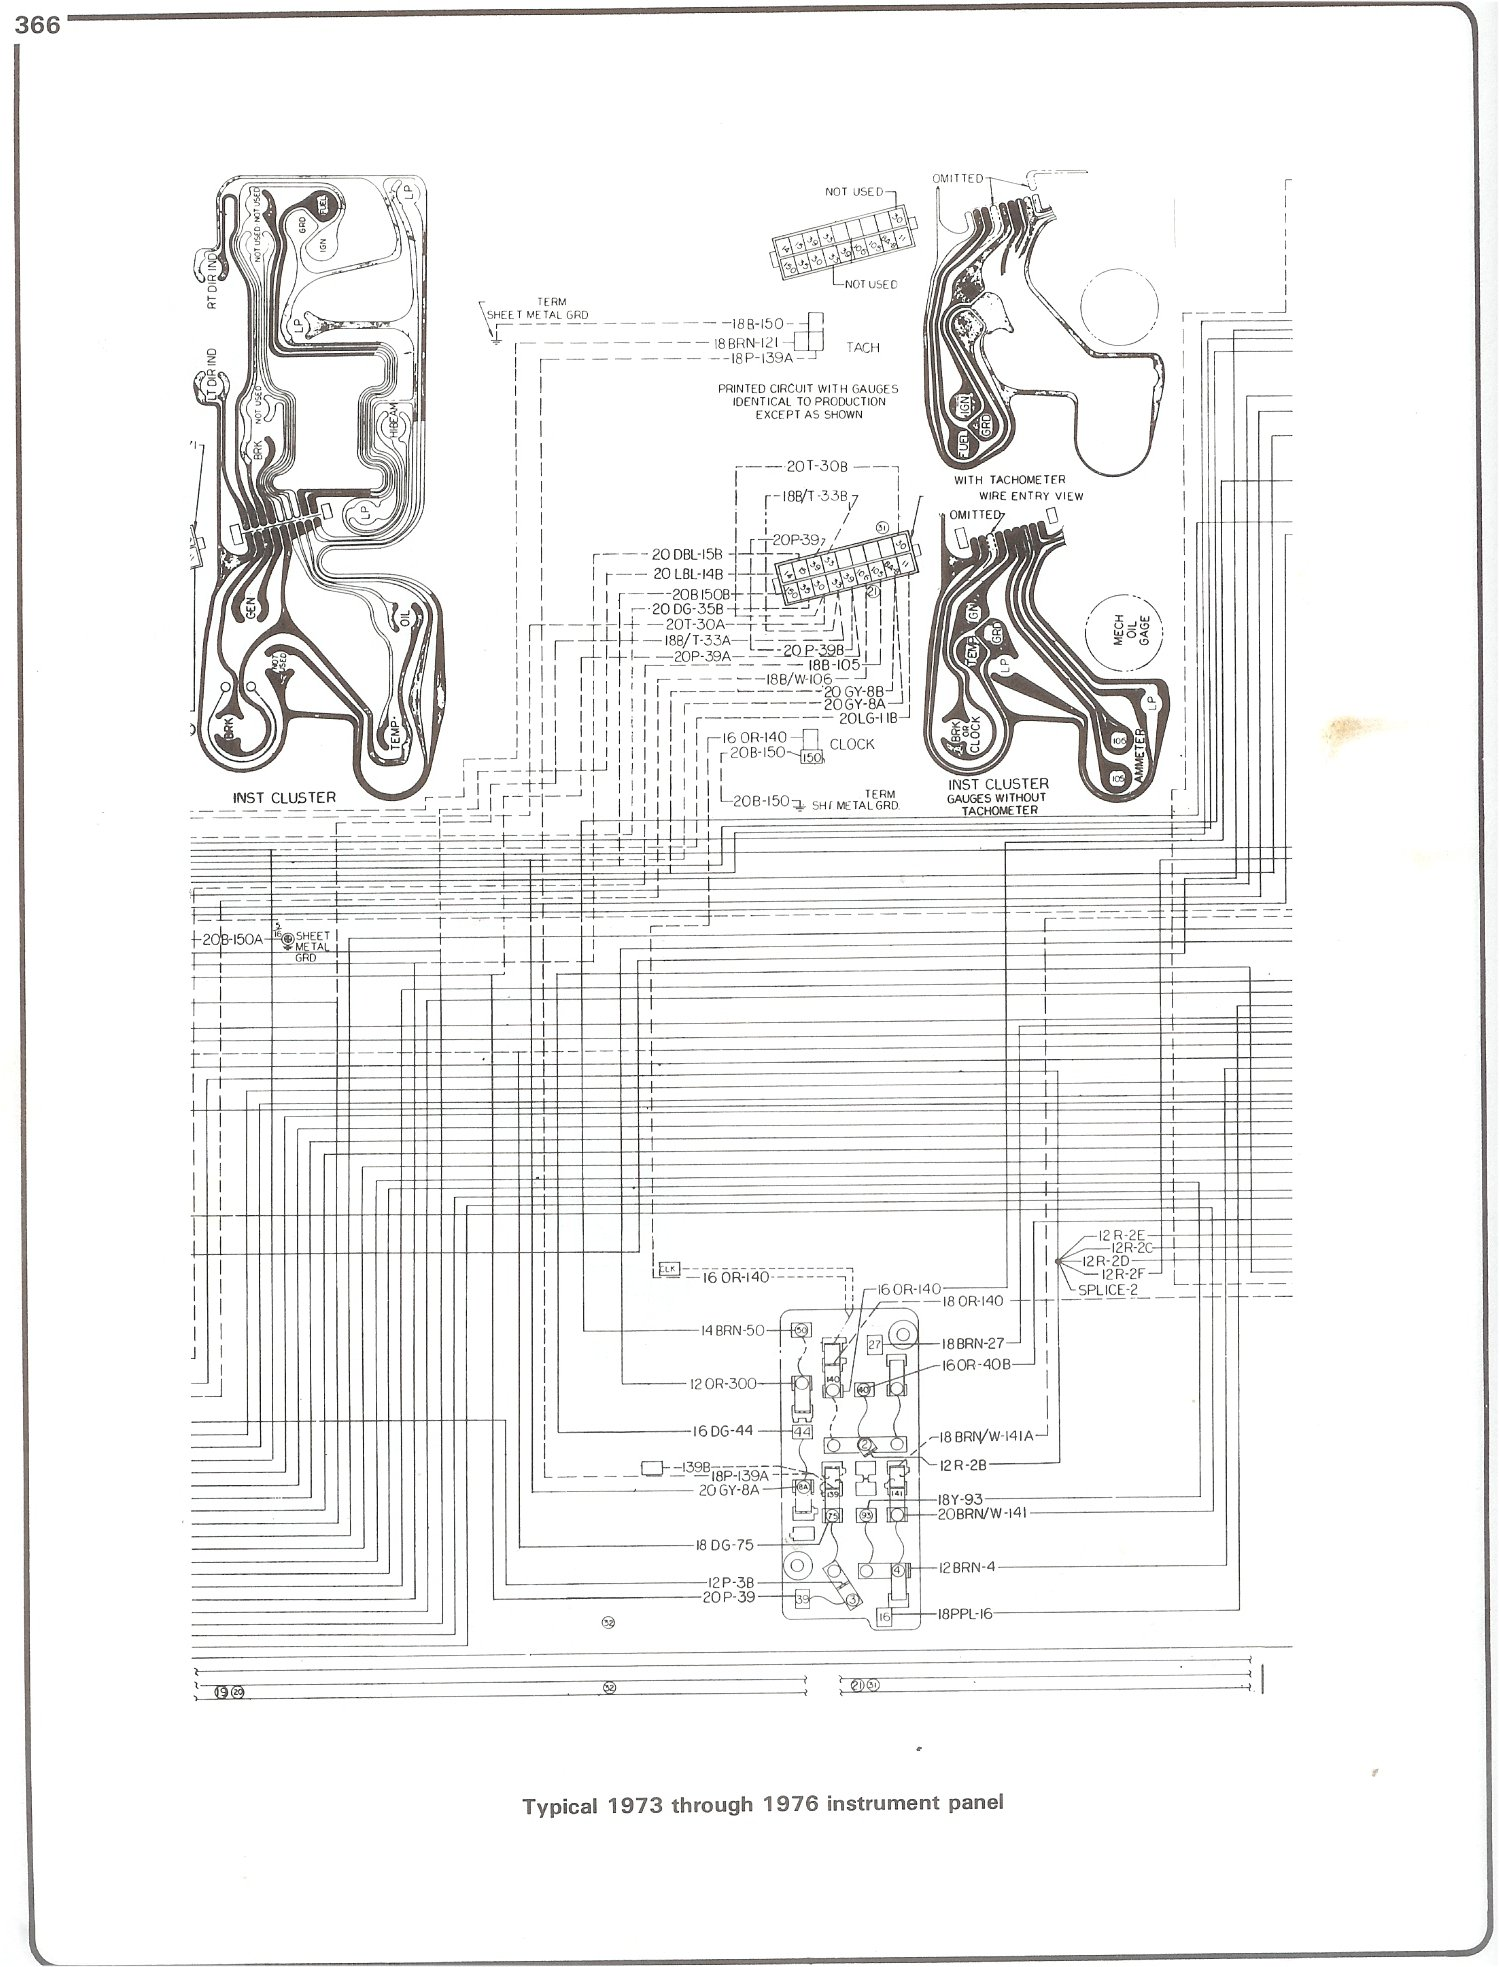 fuel system wiring diagram for 87 chevy pickup Images Gallery. 76 c10 wiring  diagram data wiring schema rh site de joueurs com